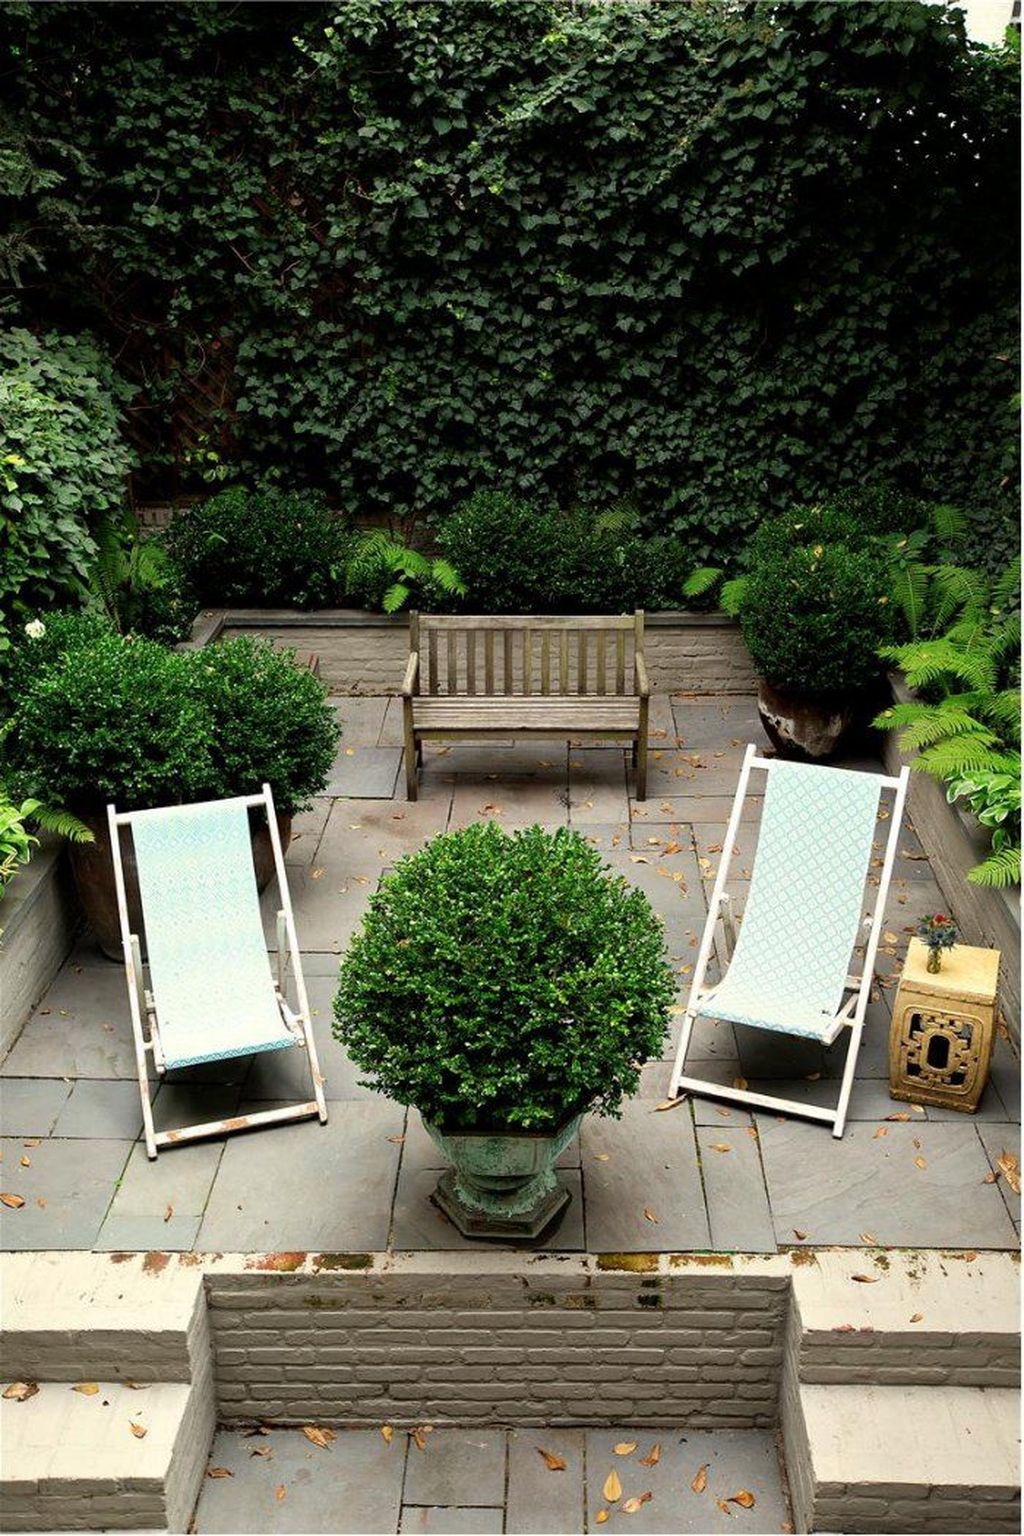 Best Jaw Dropping Urban Gardens Ideas To Copy Asap 08